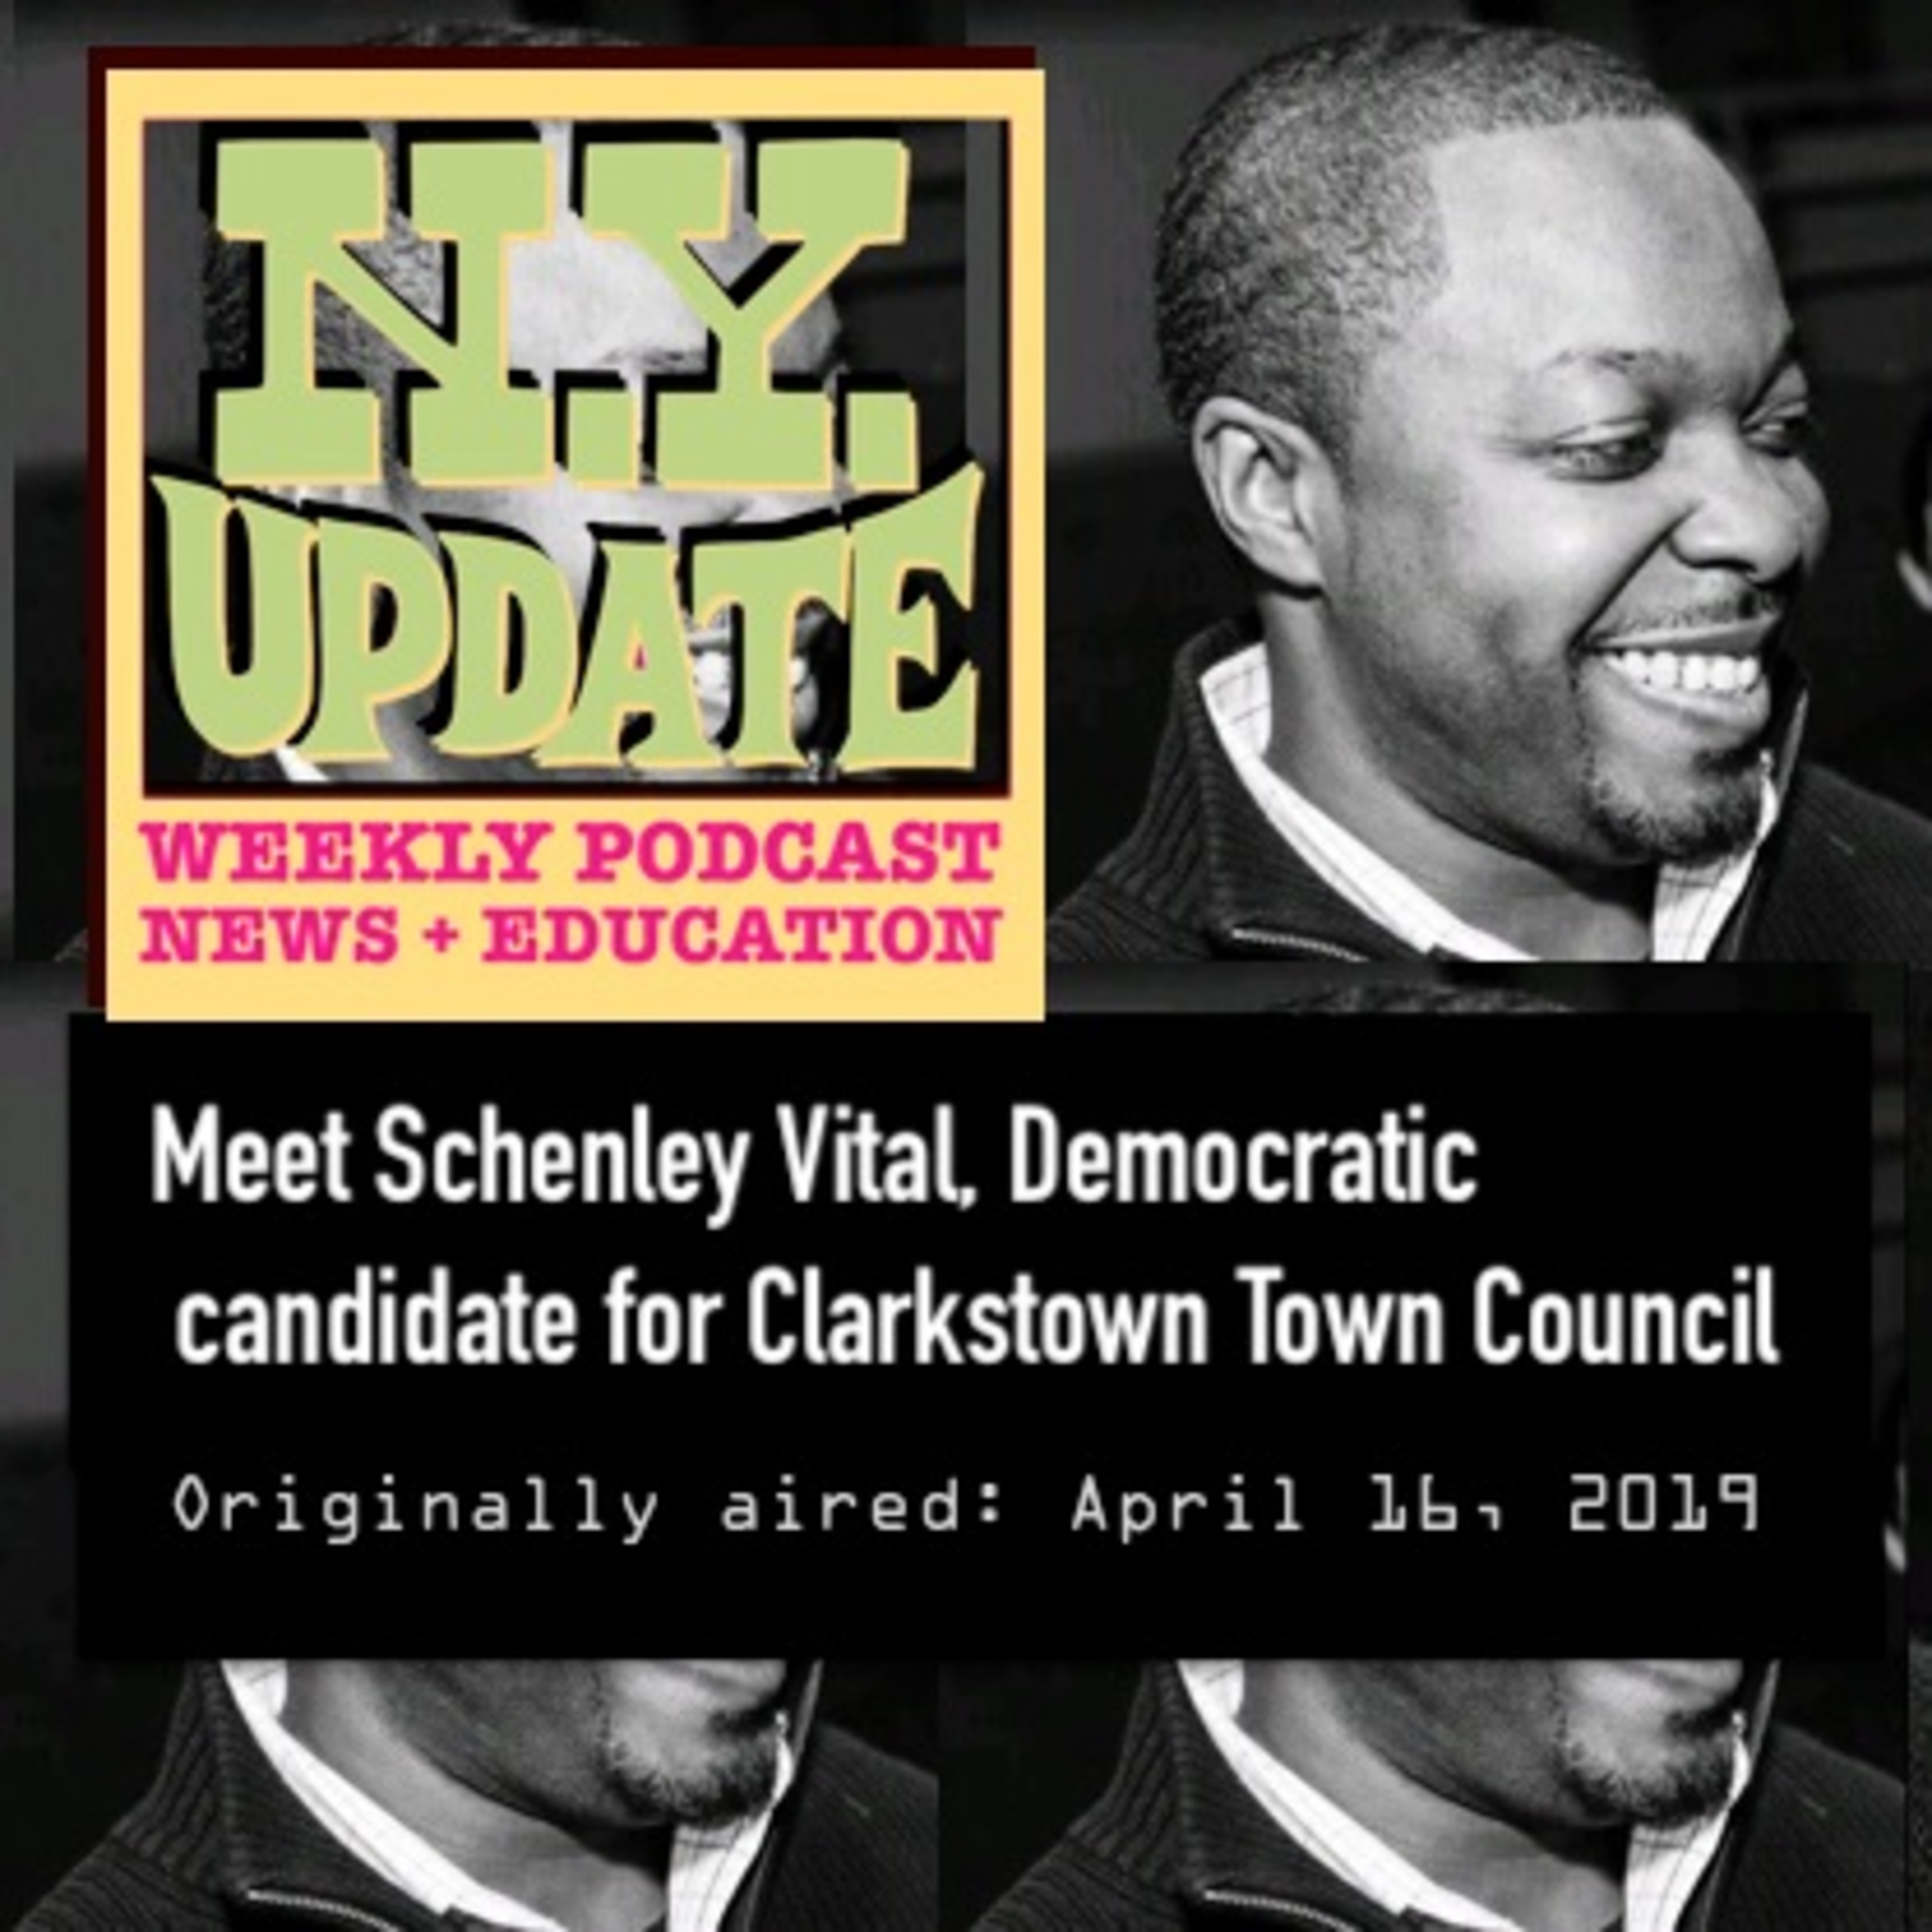 Schenley Vital, candidate for Clarkstown Town Council, Ward 3 - aired April 16, 2019